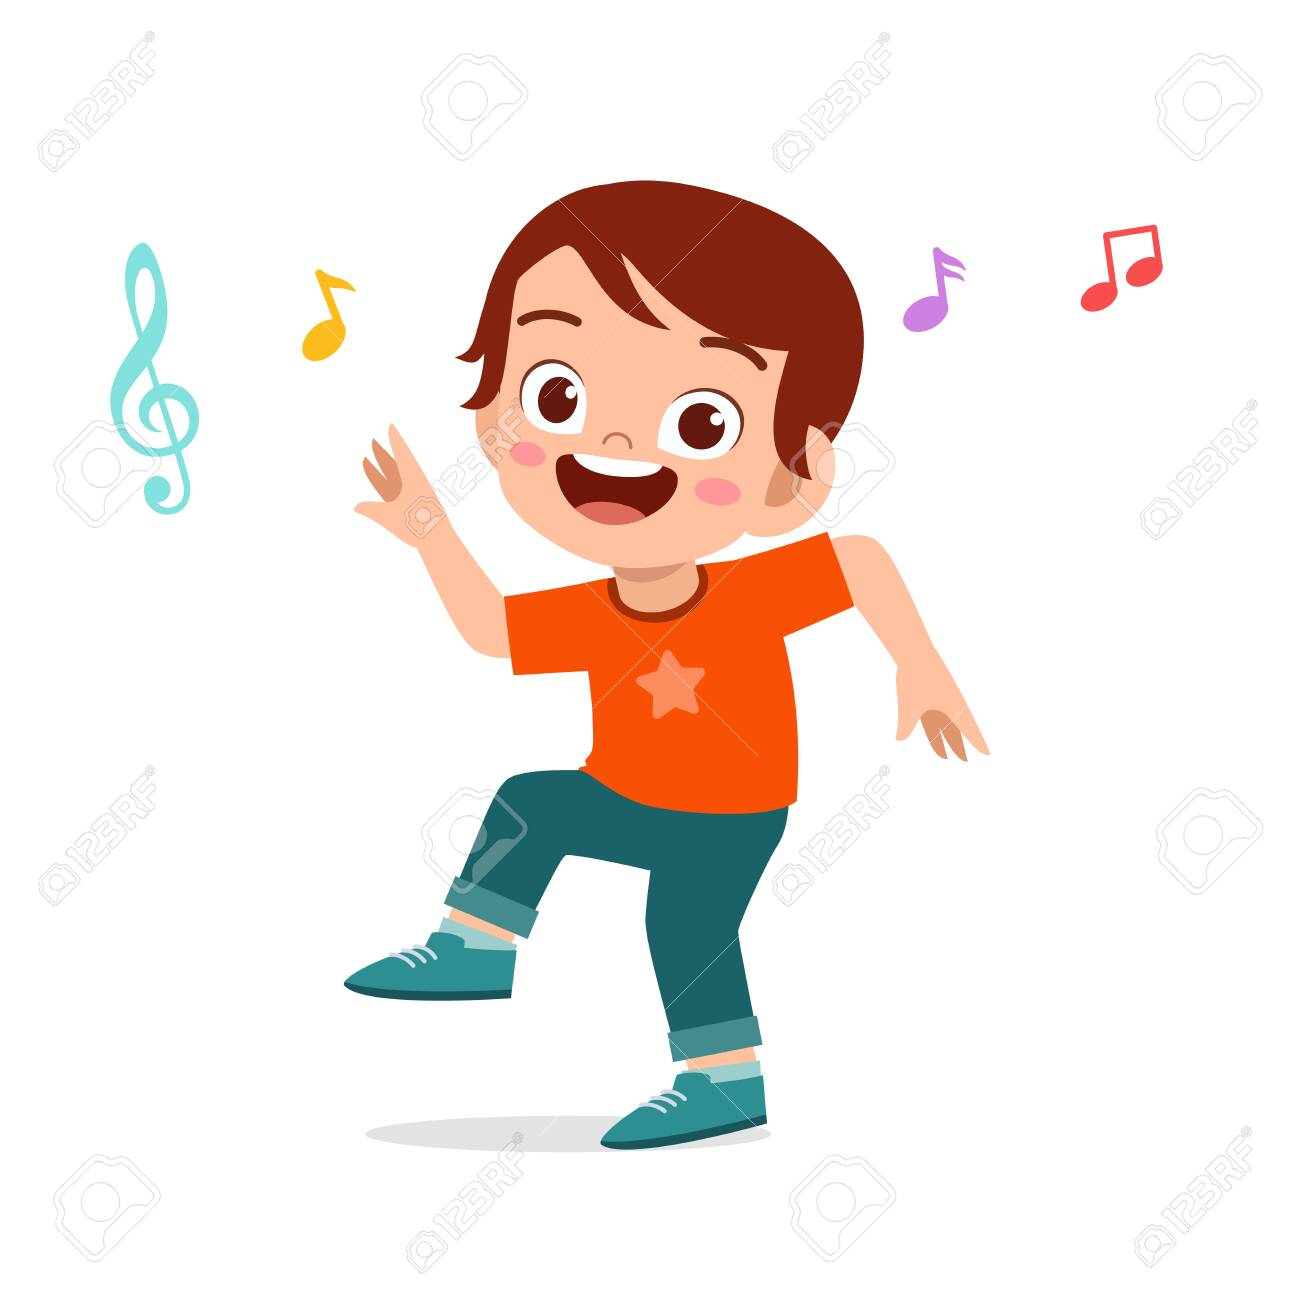 Happy Cute Kid Boy Dance With Music Royalty Free Cliparts Vectors And Stock Illustration Image 138519660